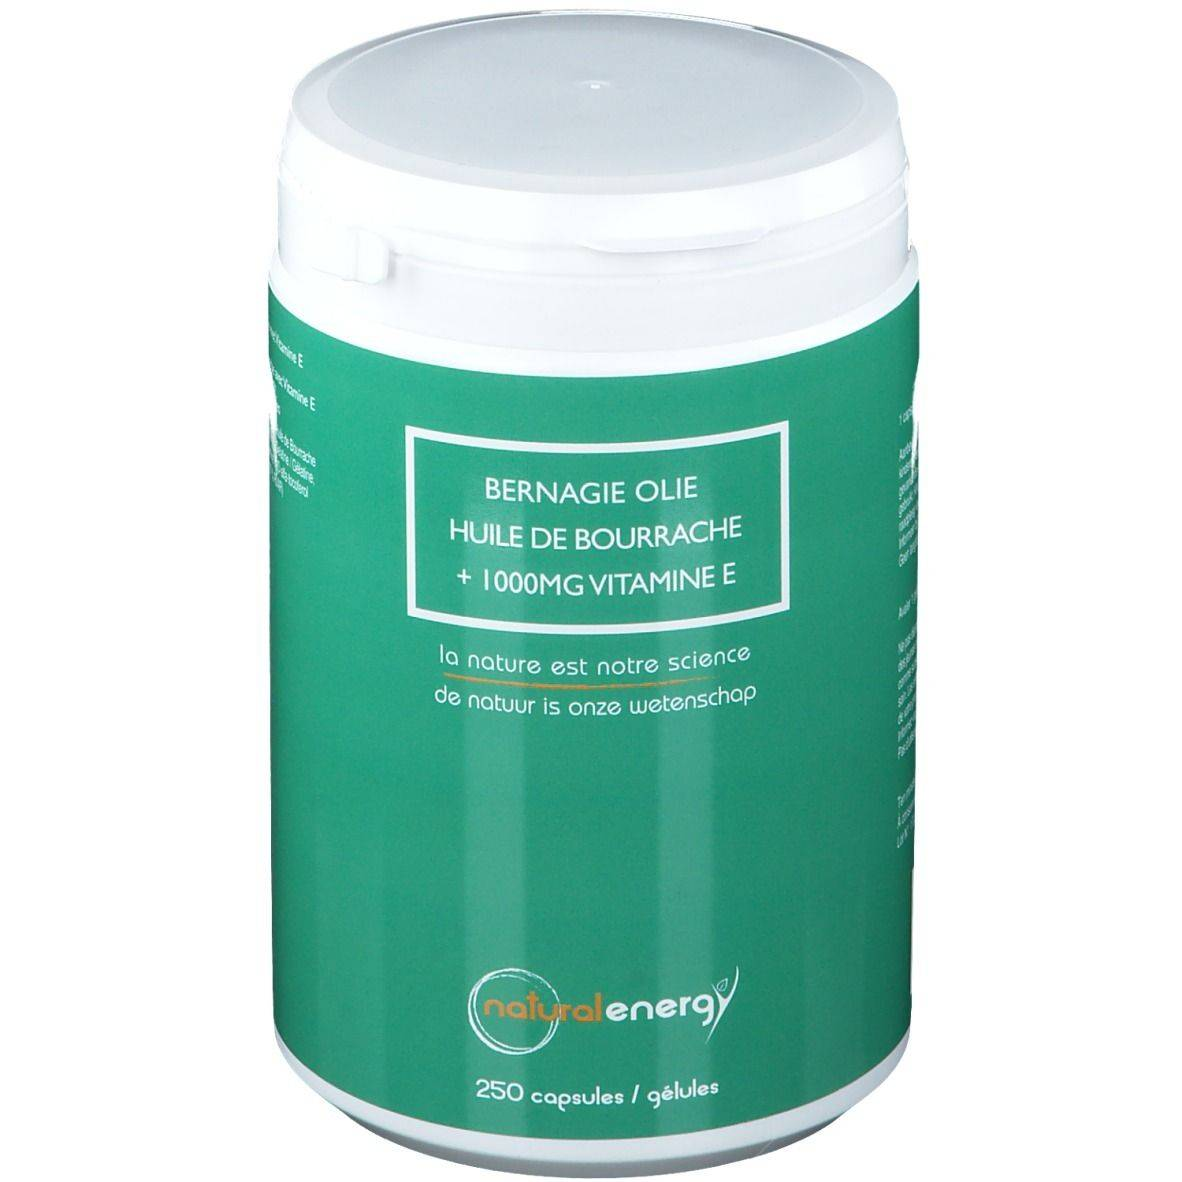 Natural Energy Huile de Bourrache pc(s) capsule(s)